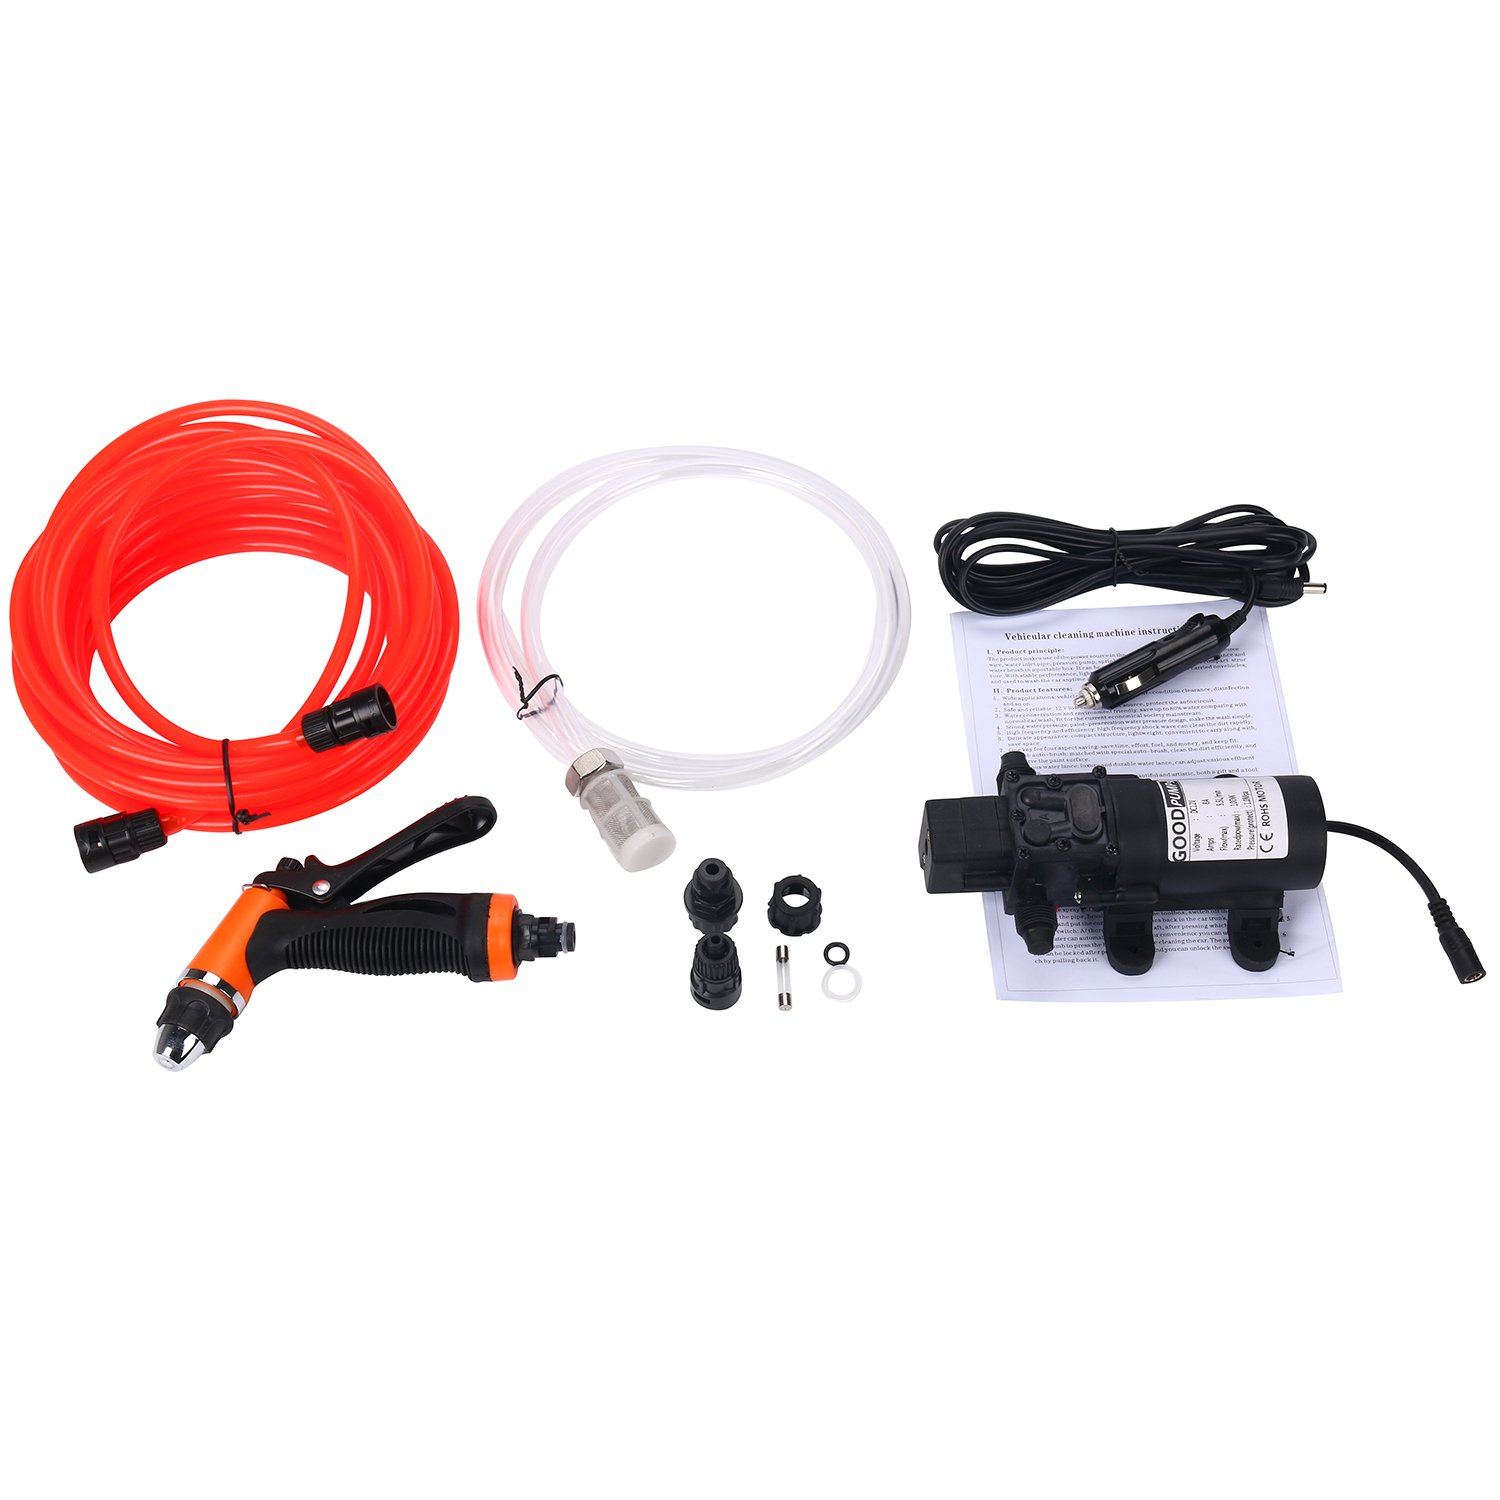 Amarine-made DC 12V Portable High Pressure Washdown Deck Pump 100W 145 PSI Self-Priming Quick Car Cleaning Wash Pump Electrical Washer Kit